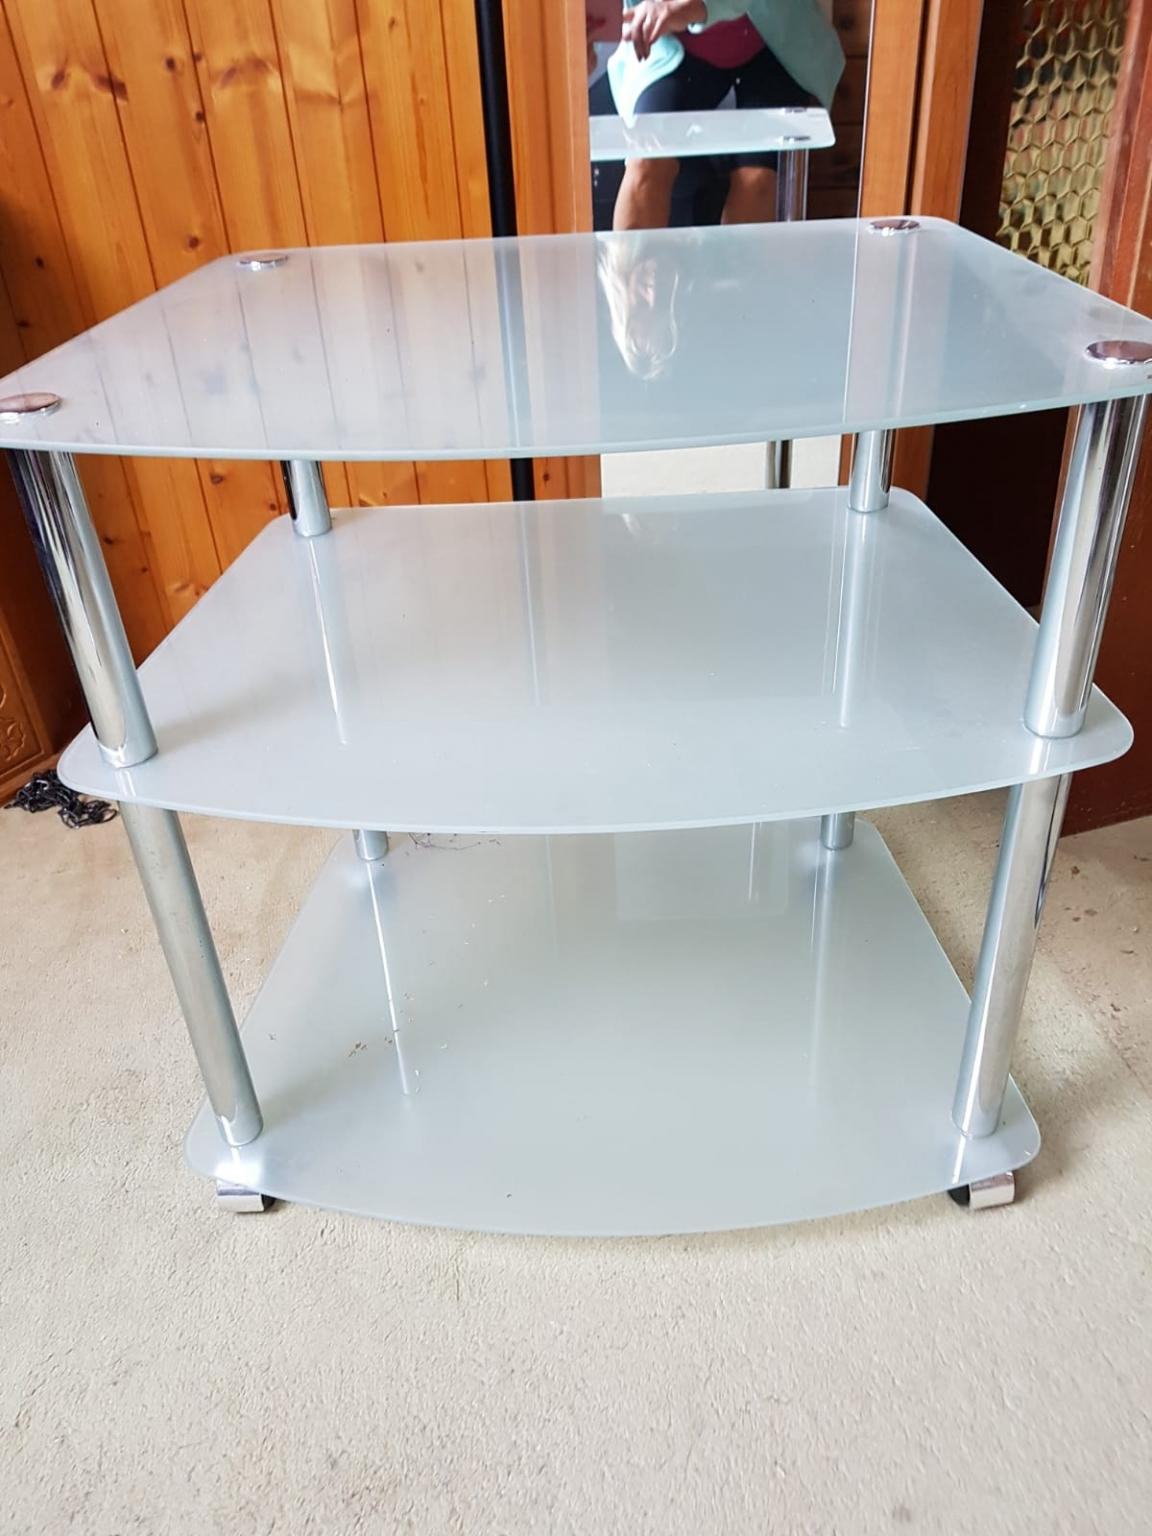 Tv Rack Mit Rollen Tv-rack In 68305 Mannheim For €15.00 For Sale | Shpock